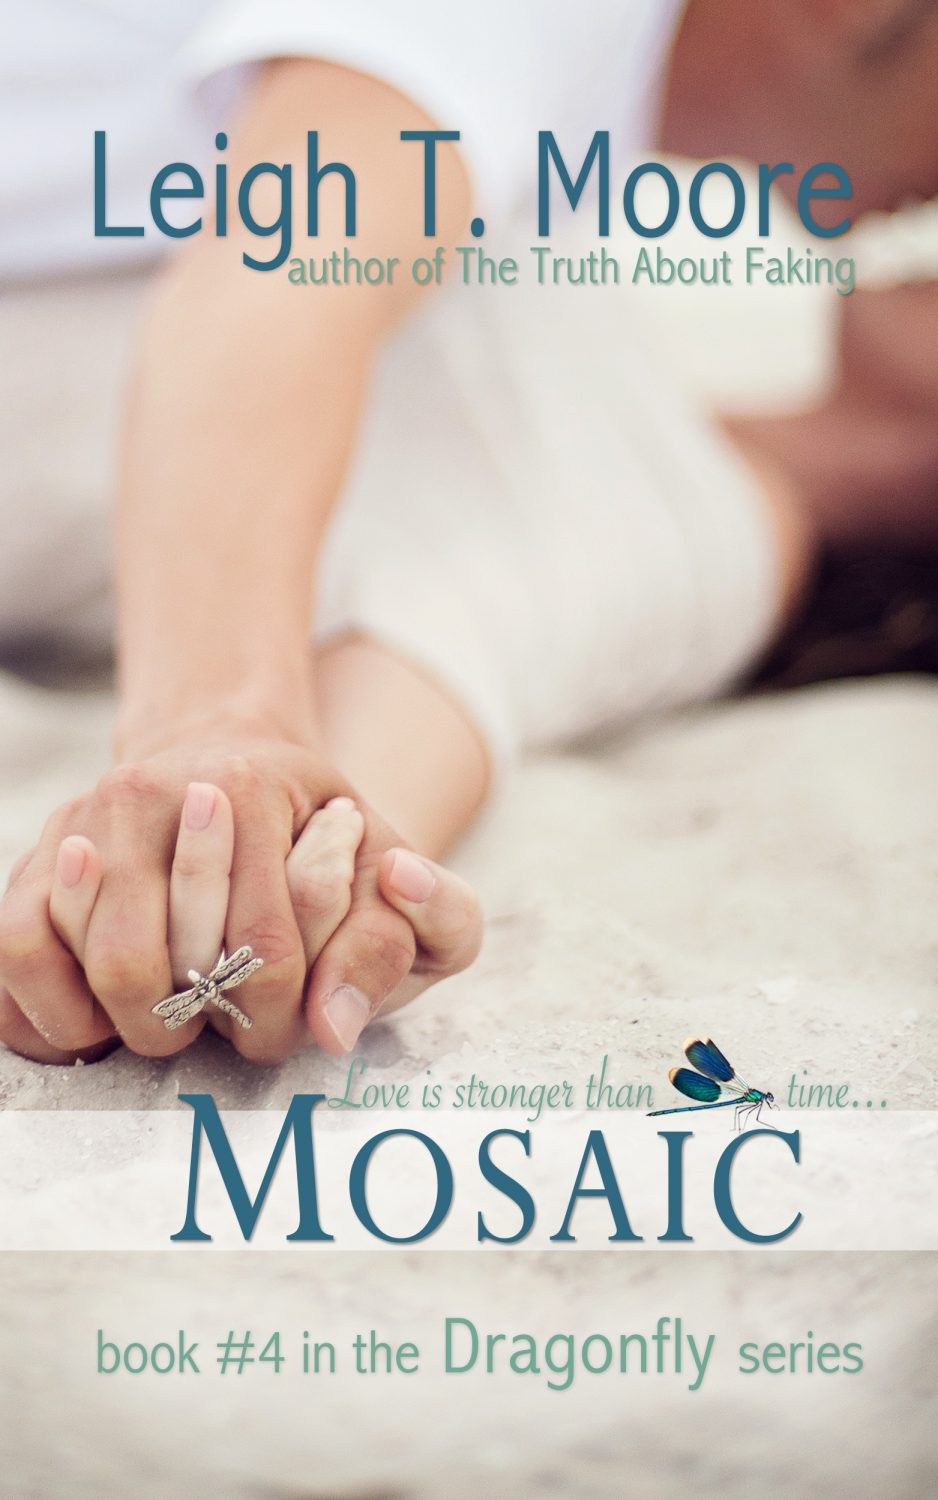 In Review: Mosaic (Dragonfly #4) by Leigh Talbert Moore